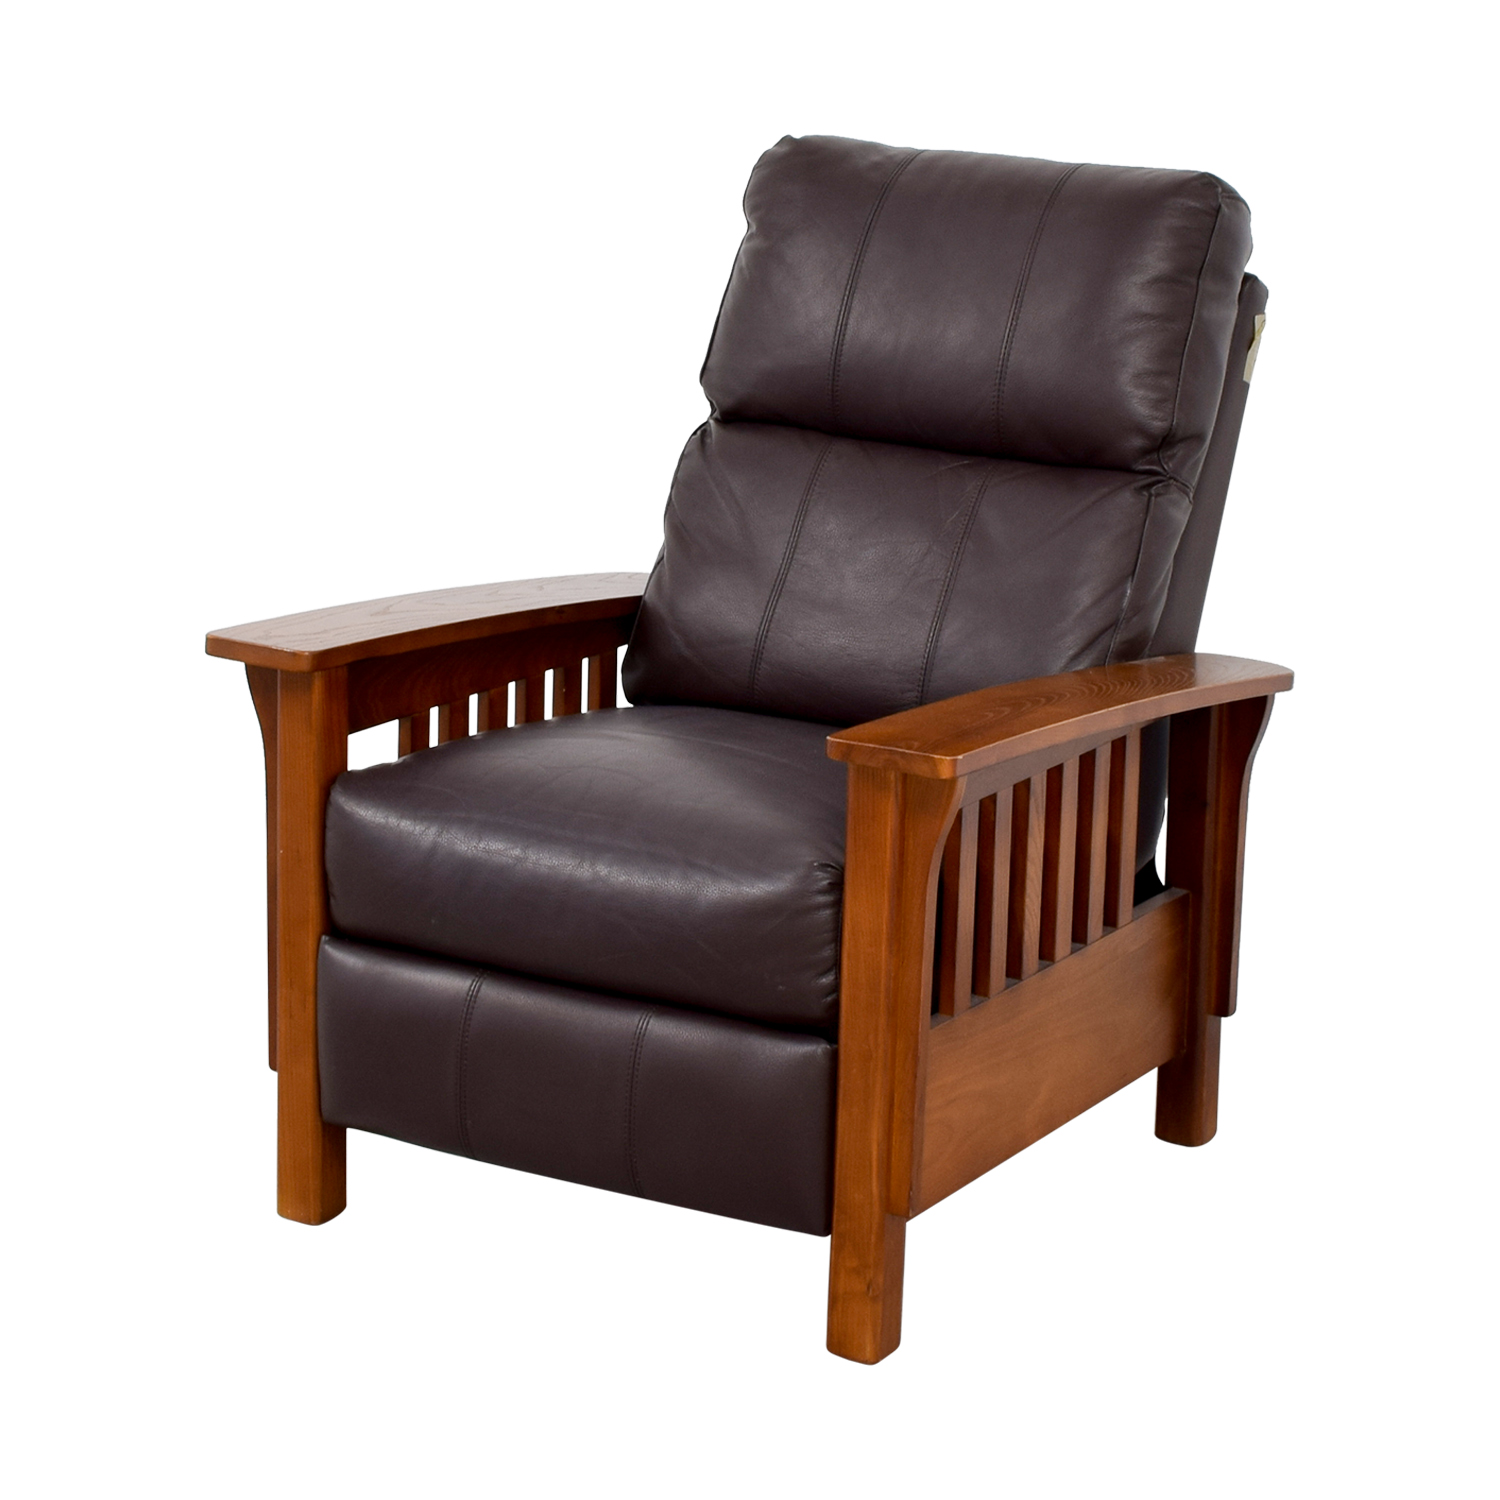 Macys Leather Chair 76 Off Macy 39s Macy 39s Harrison Brown Leather Pushback